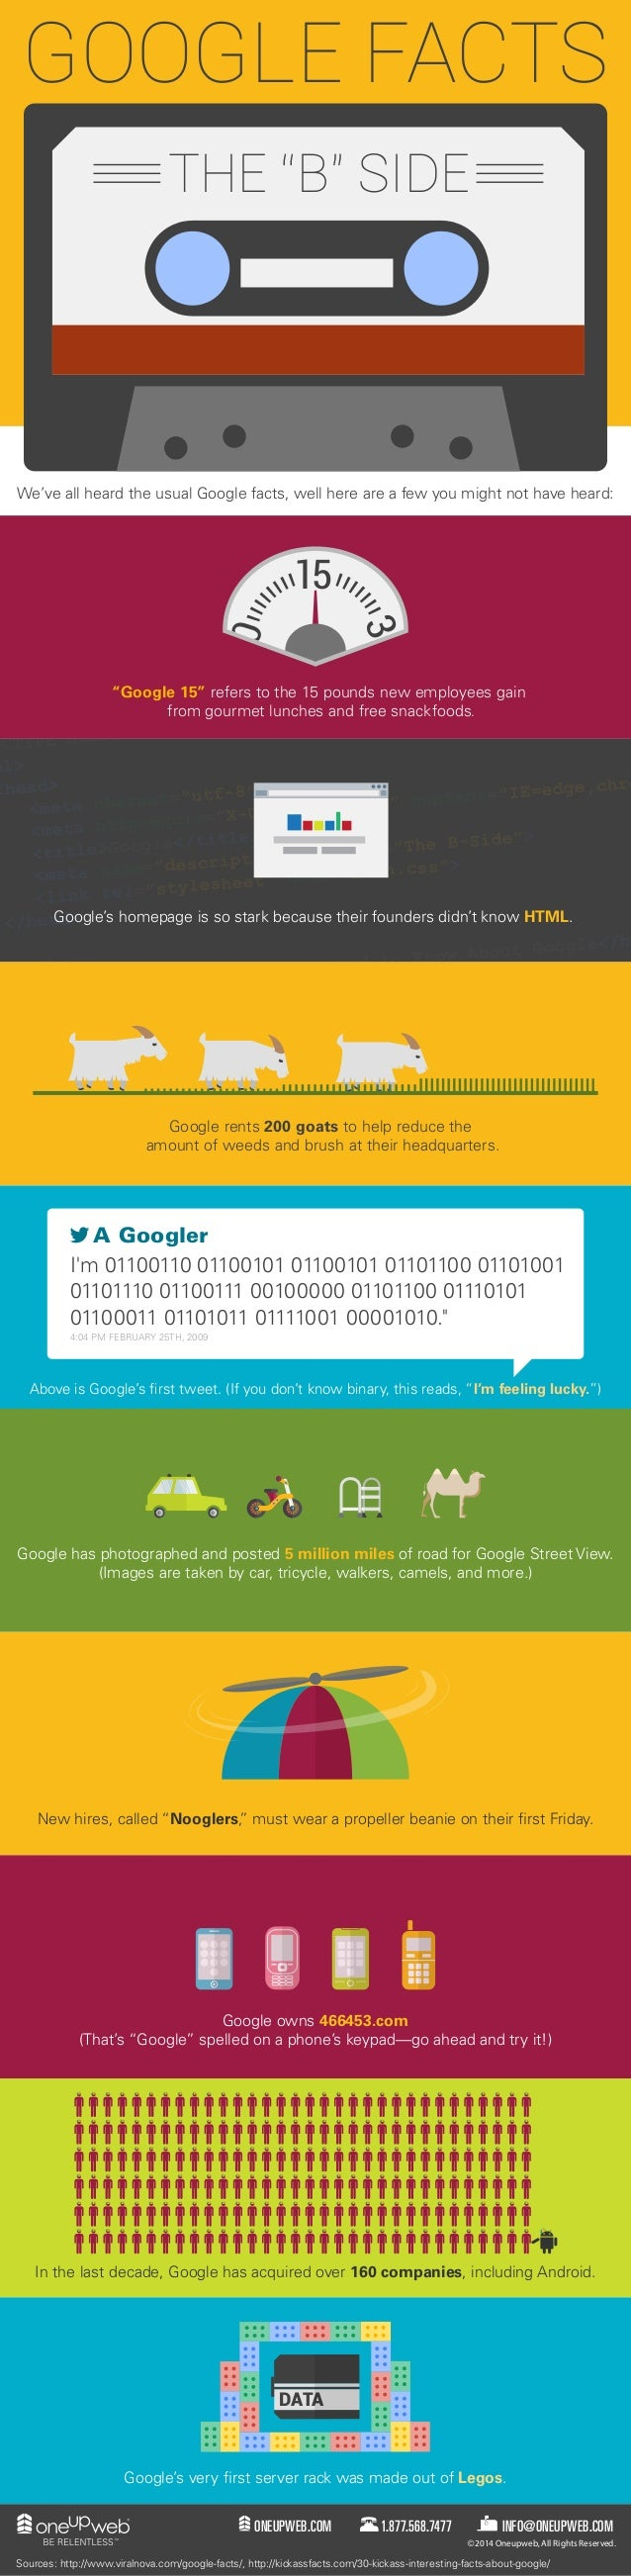 """GOOGLE FACTS  THE """"B"""" SIDE  We've all heard the usual Google facts, well here are a few you might not have heard:  15  3  ..."""